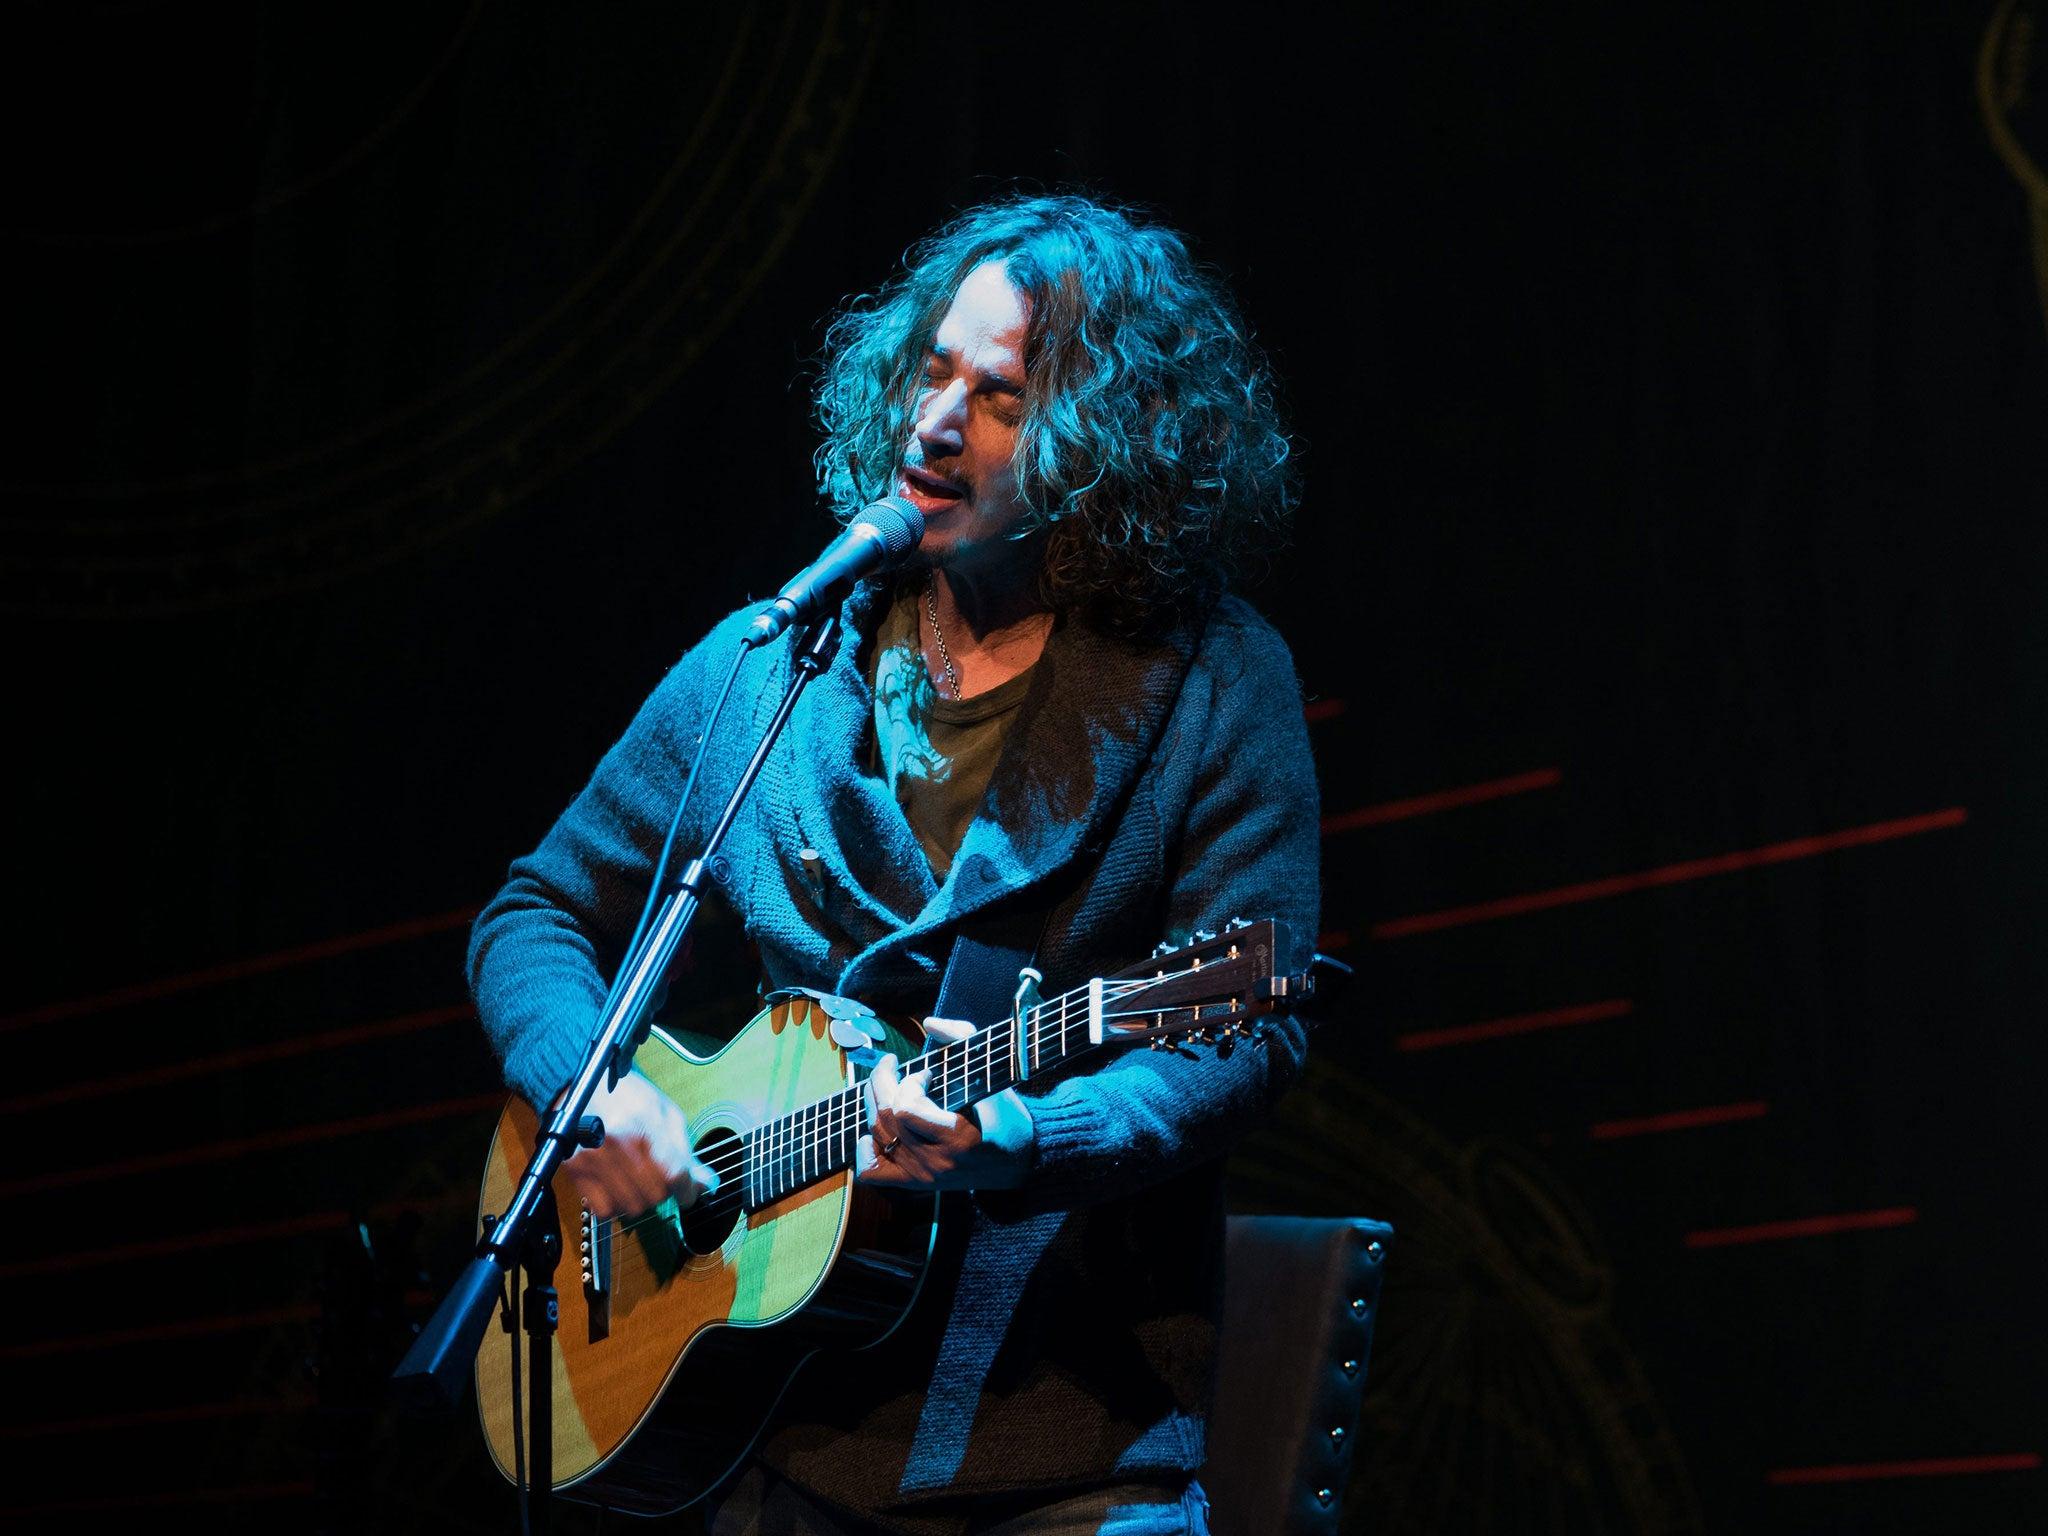 Chris Cornell Dead Video From Singers Last Gig With Soundgarden At Tom Morello Guitar Wiring Diagram The Fox Theatre In Detroit Emerges Online Independent